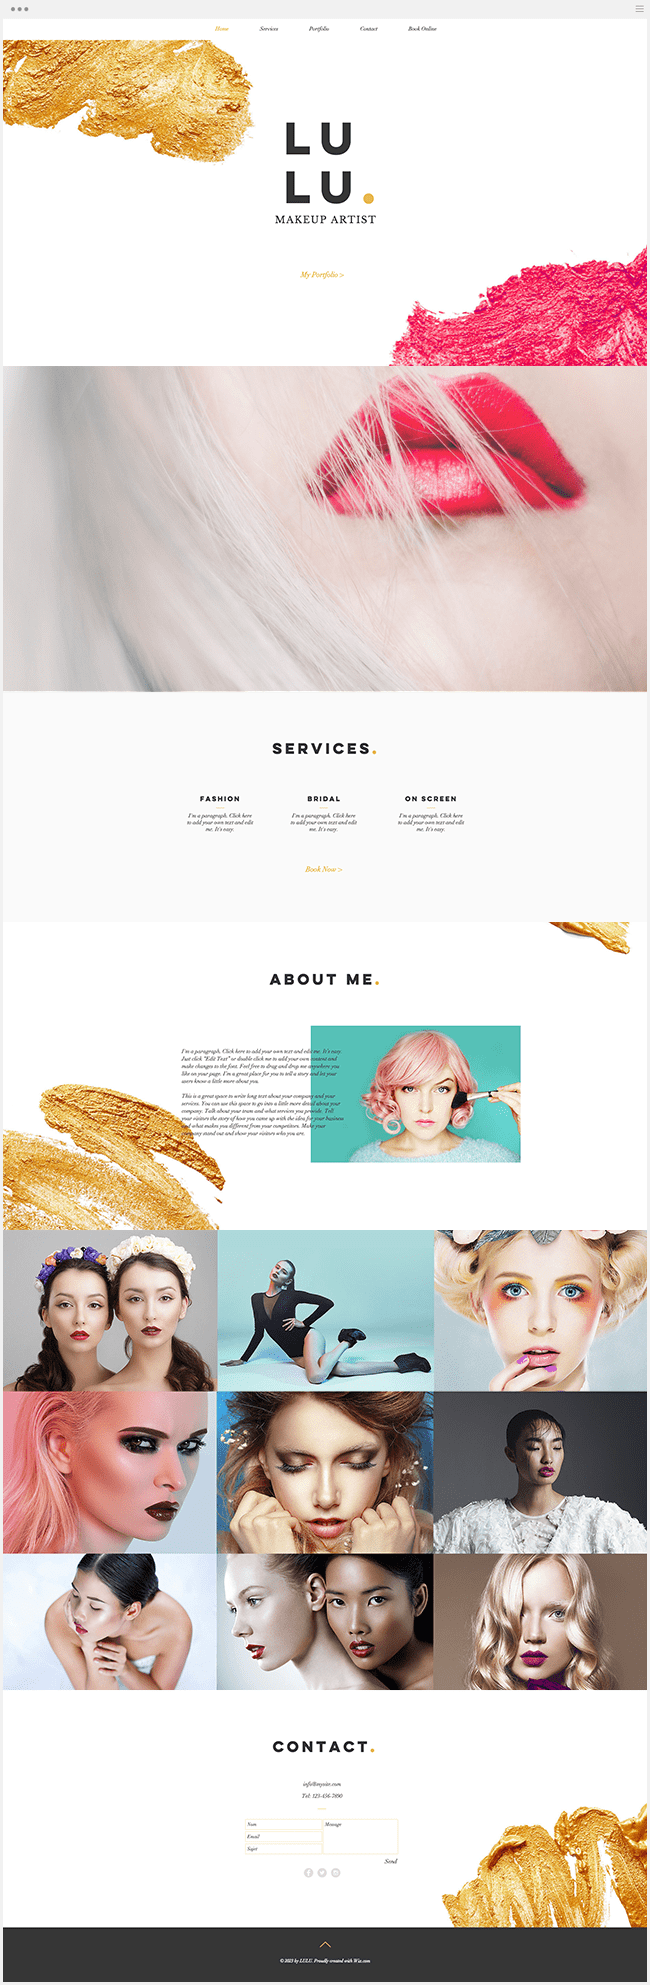 Site Wix Template Maquillage Salon Beauté